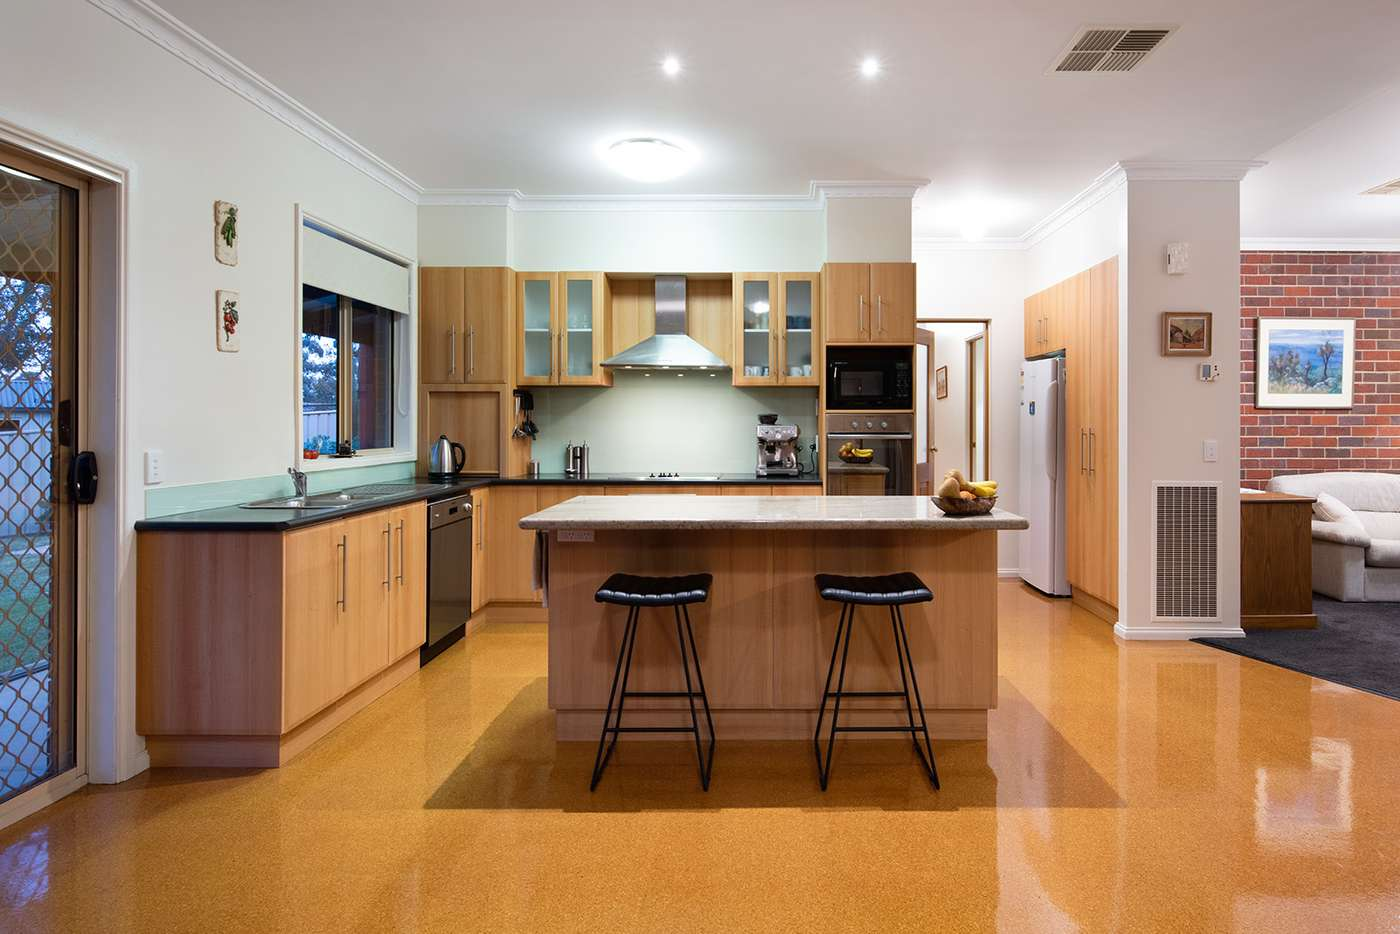 Fifth view of Homely house listing, 4 Hastings Drive, Maiden Gully VIC 3551